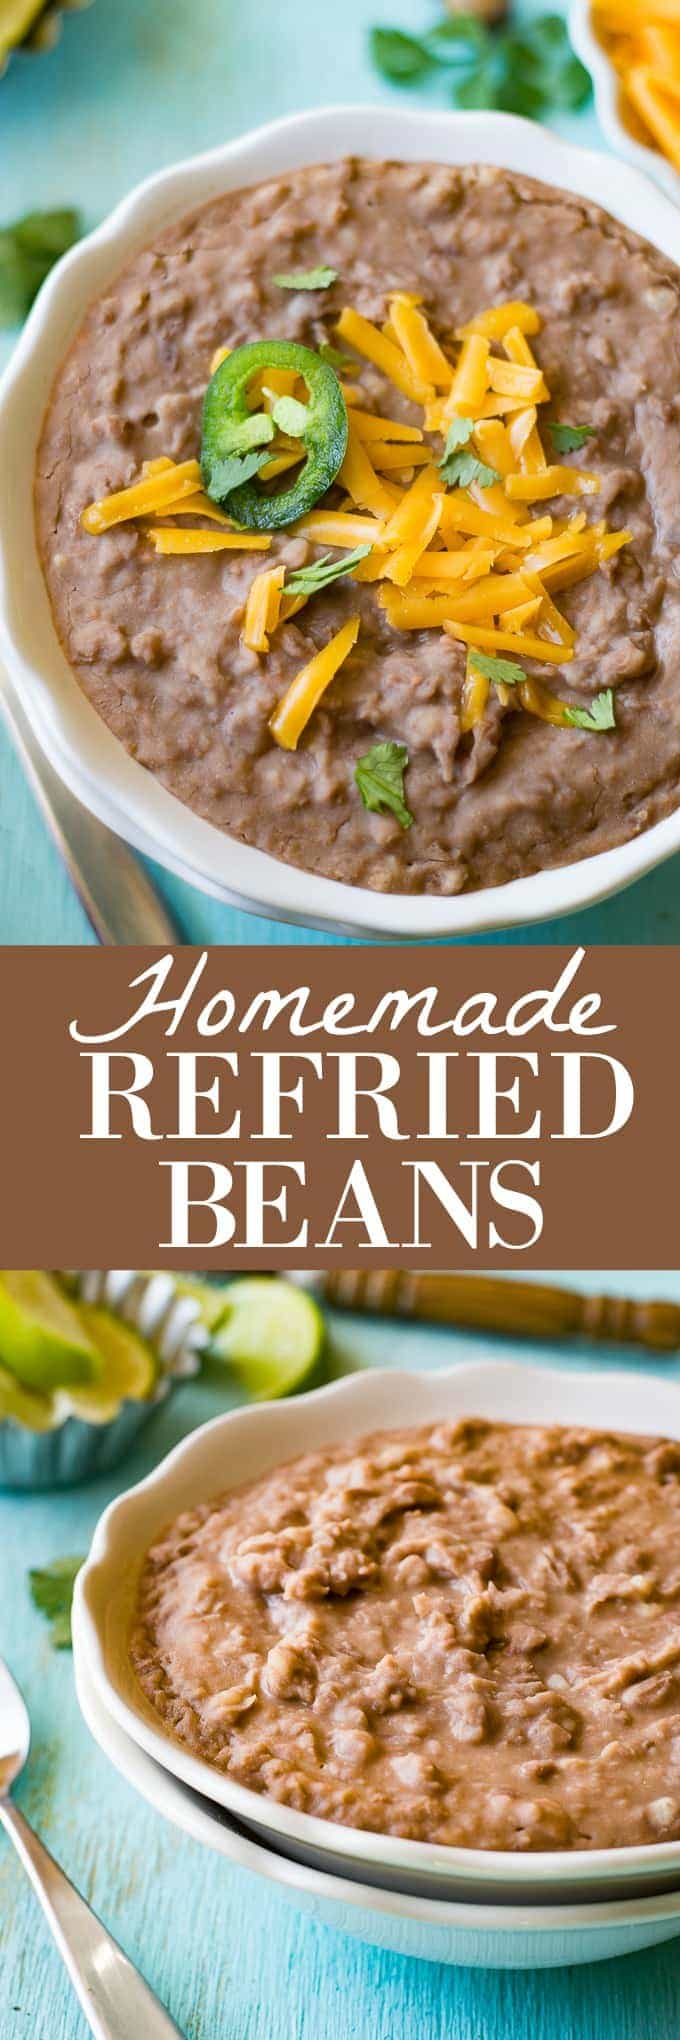 Mexican refried beans recipe uk